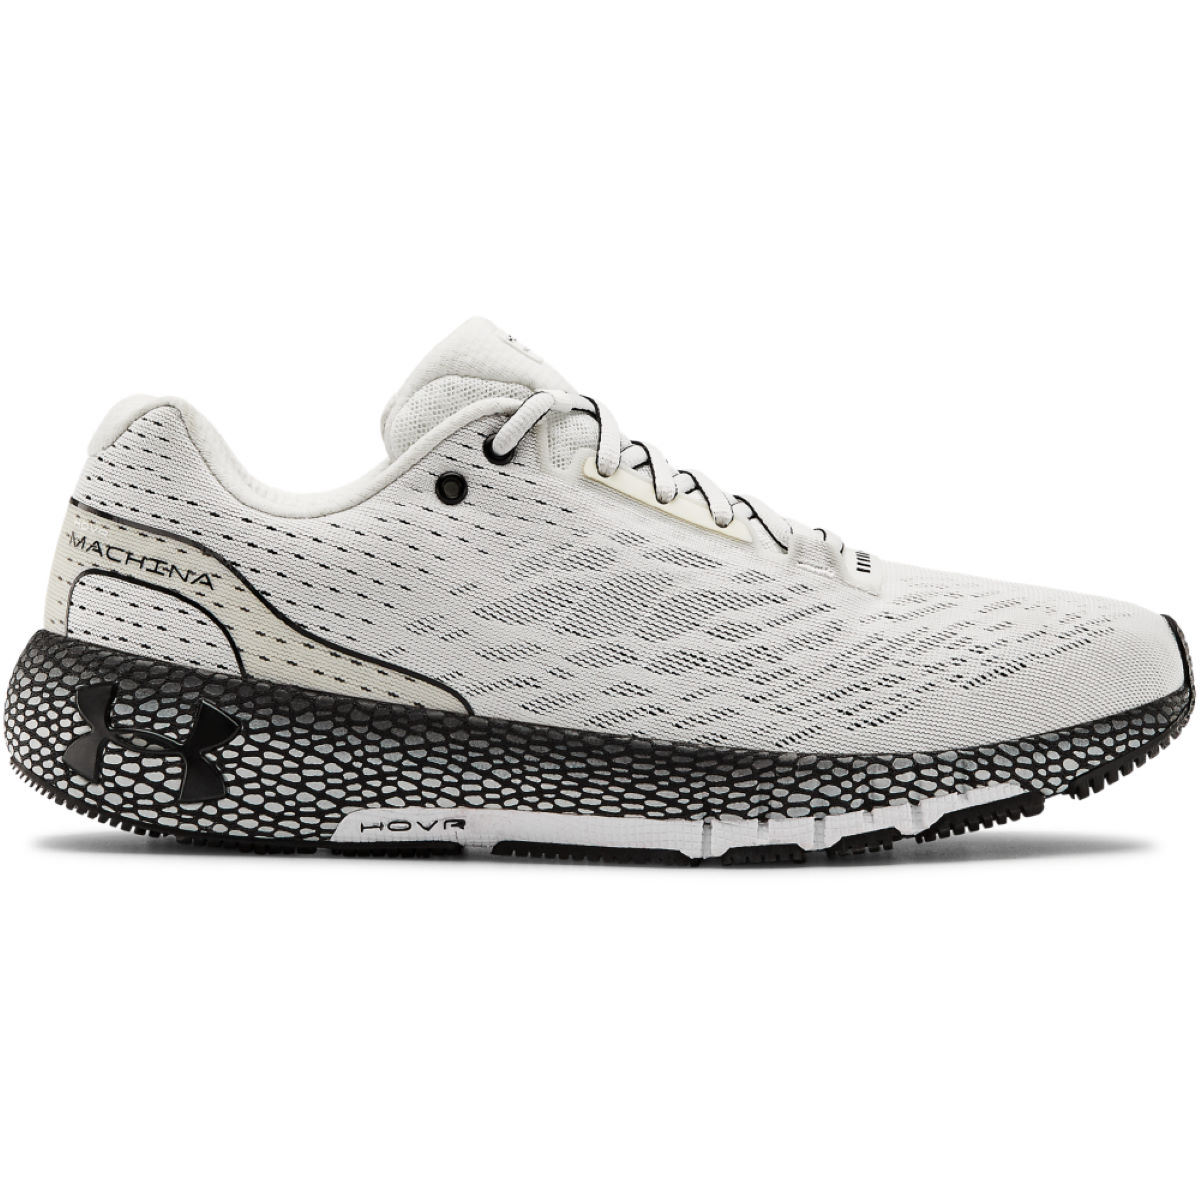 Under Armour Under Armour HOVR Machina Running Shoe   Running Shoes